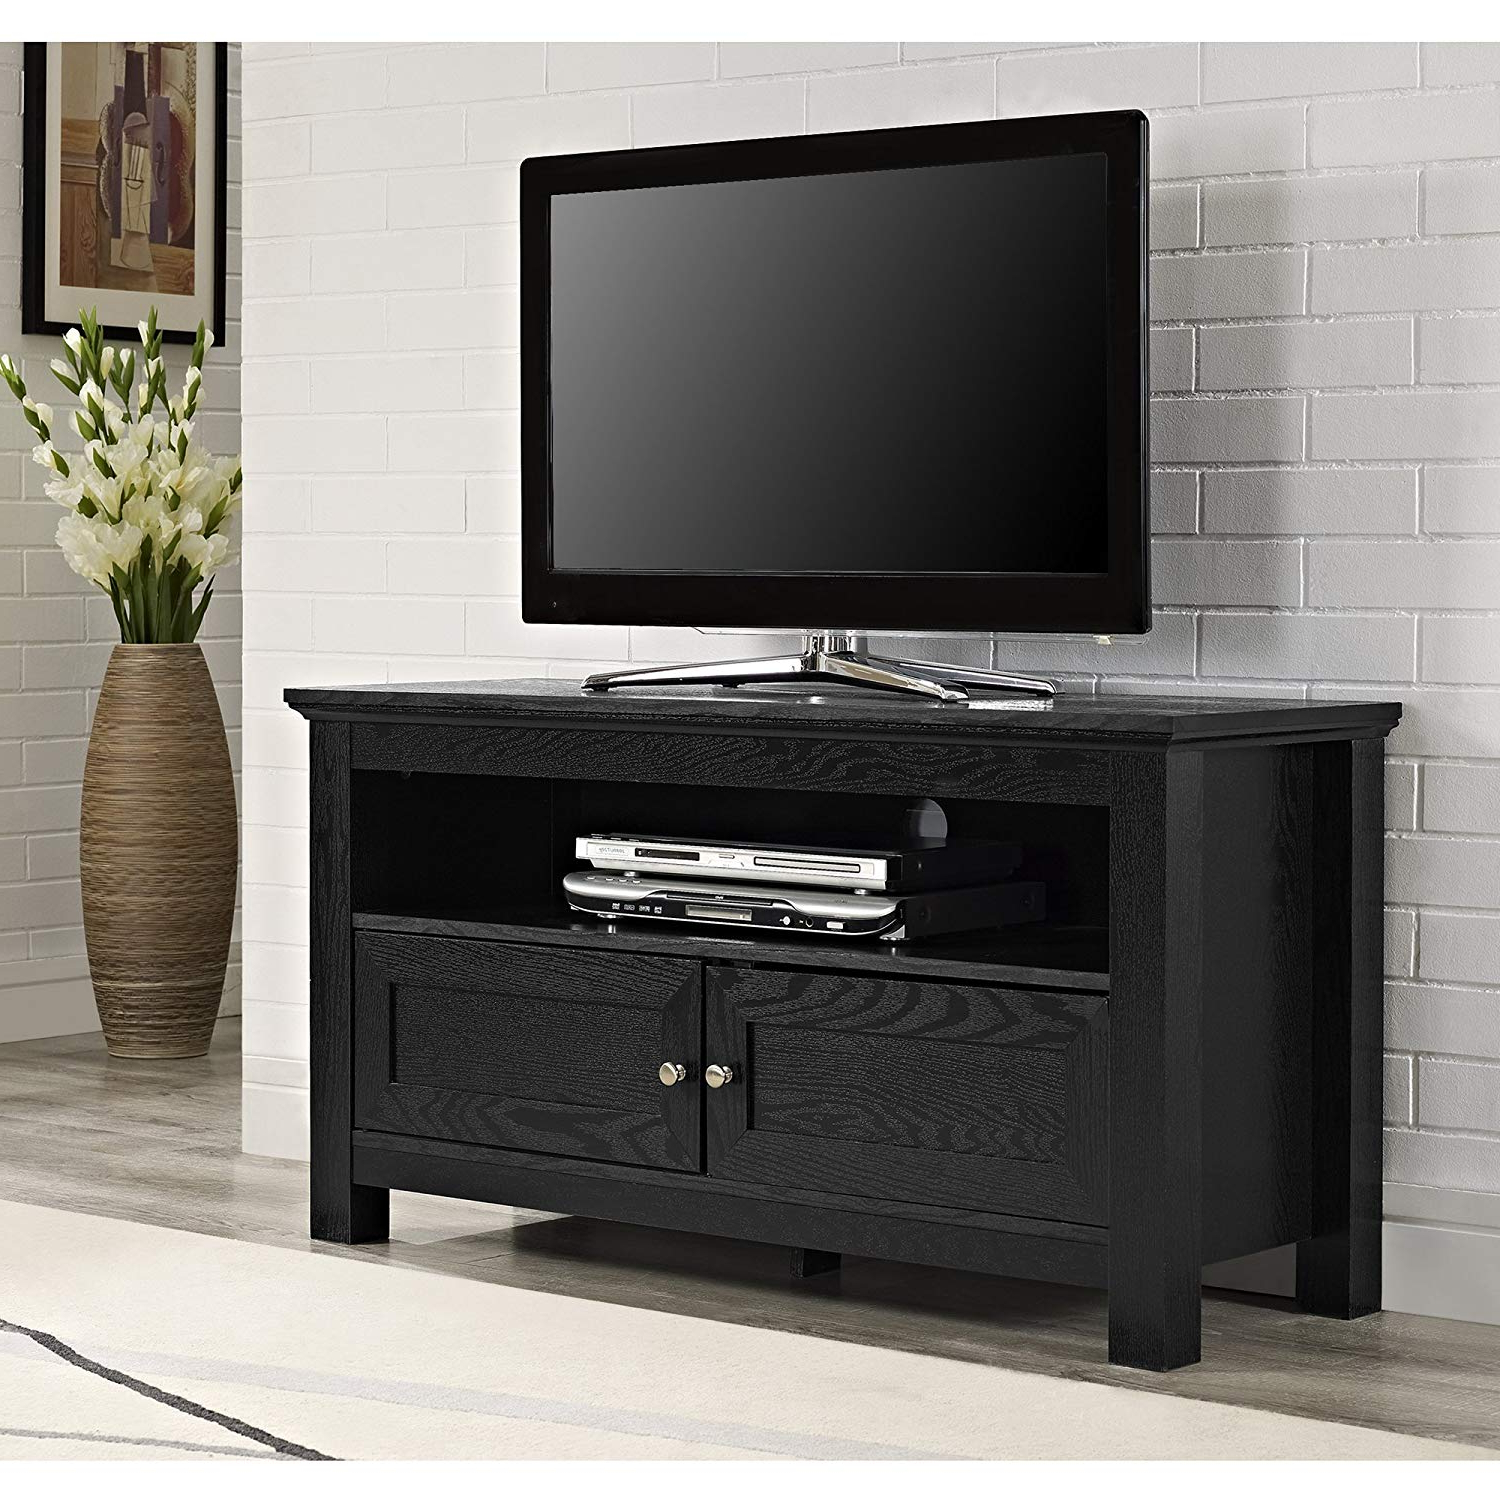 Popular Wood Tv Entertainment Stands Throughout Amazon: Walker Edison 44 Inches Cortez Tv Stand Console, Black (Gallery 13 of 20)